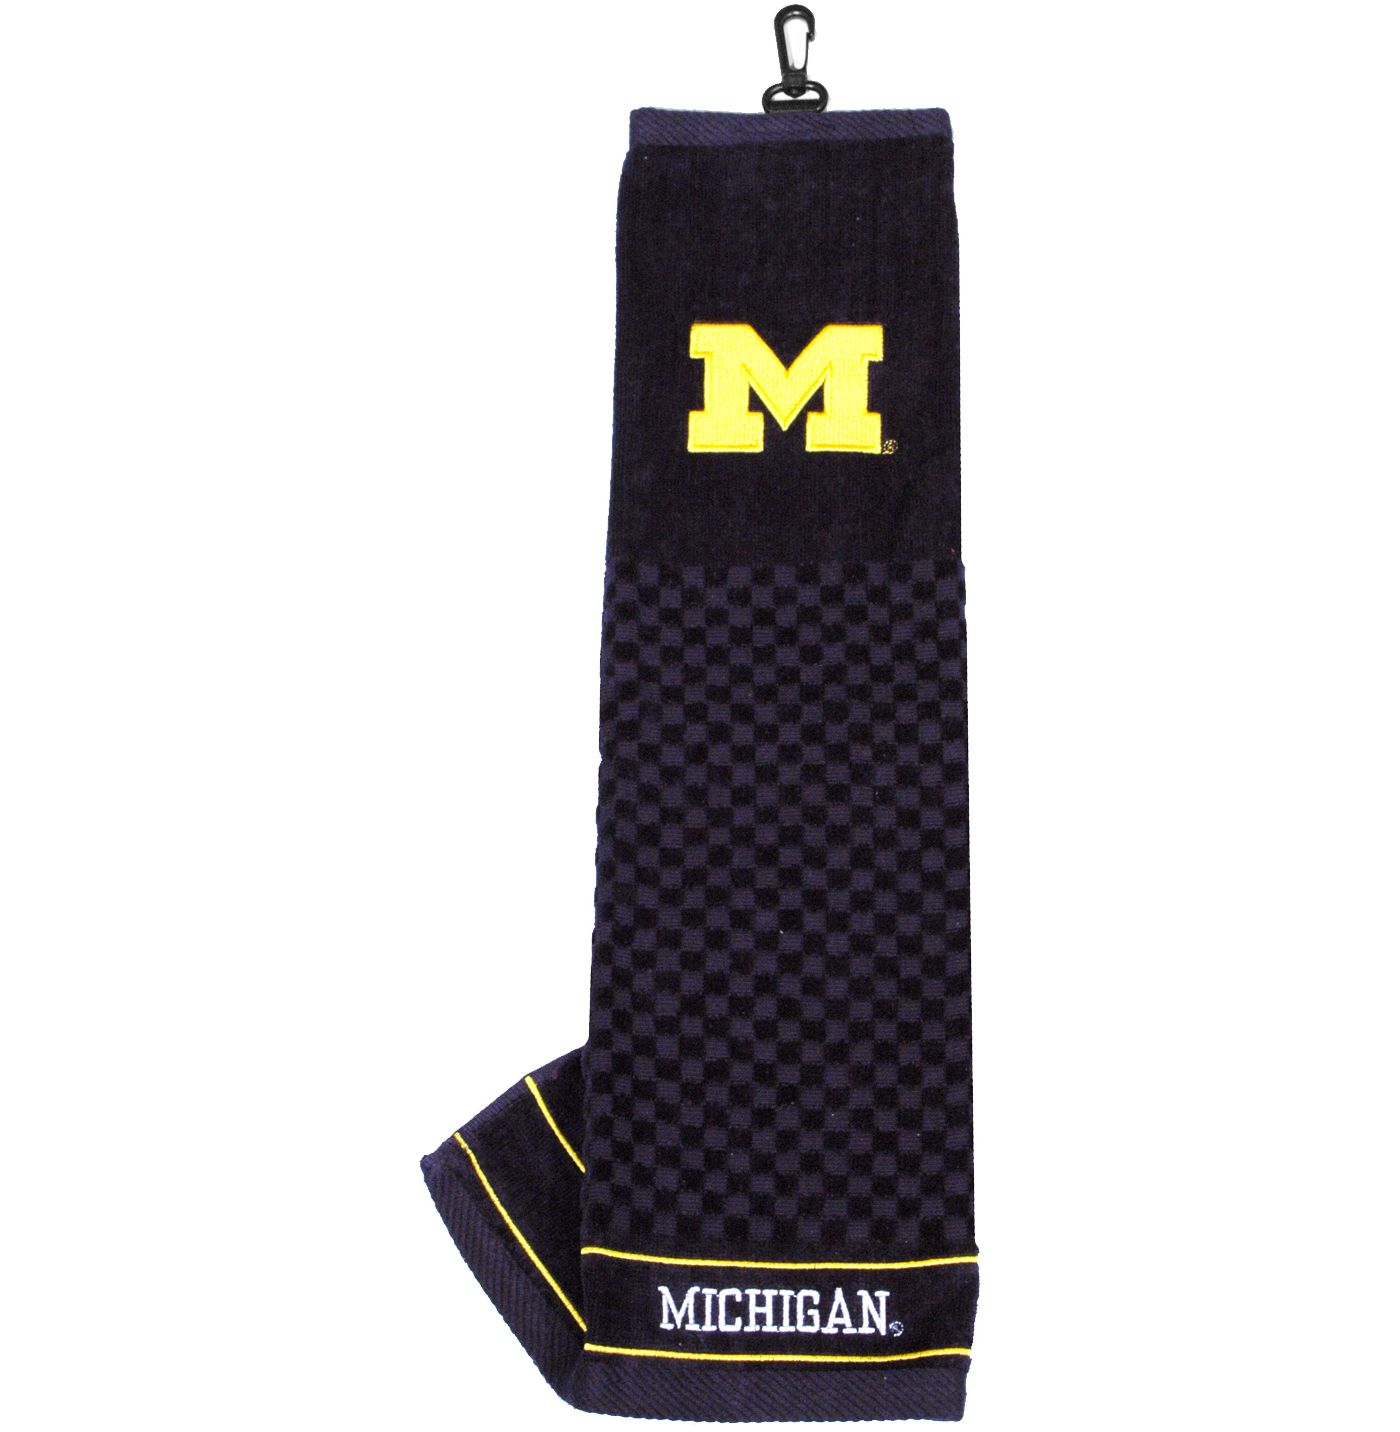 Team Golf Michigan Wolverines Embroidered Towel